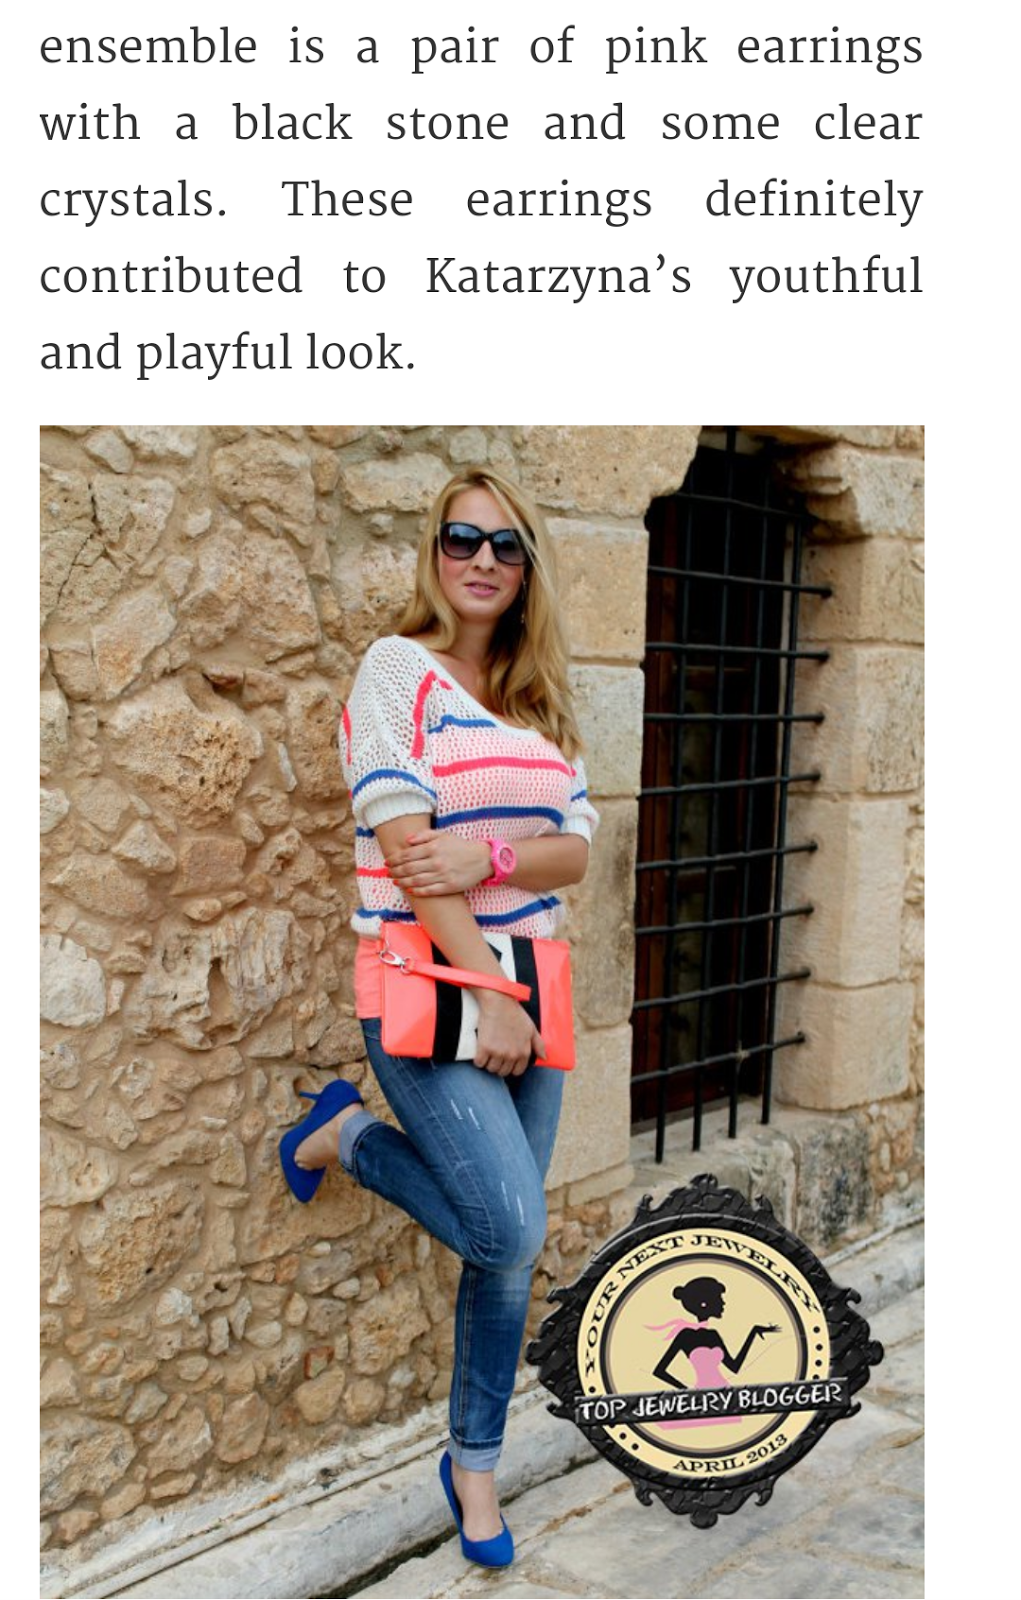 MEDIA ABOUT ME - Top 10 jewelry bloggers 2013